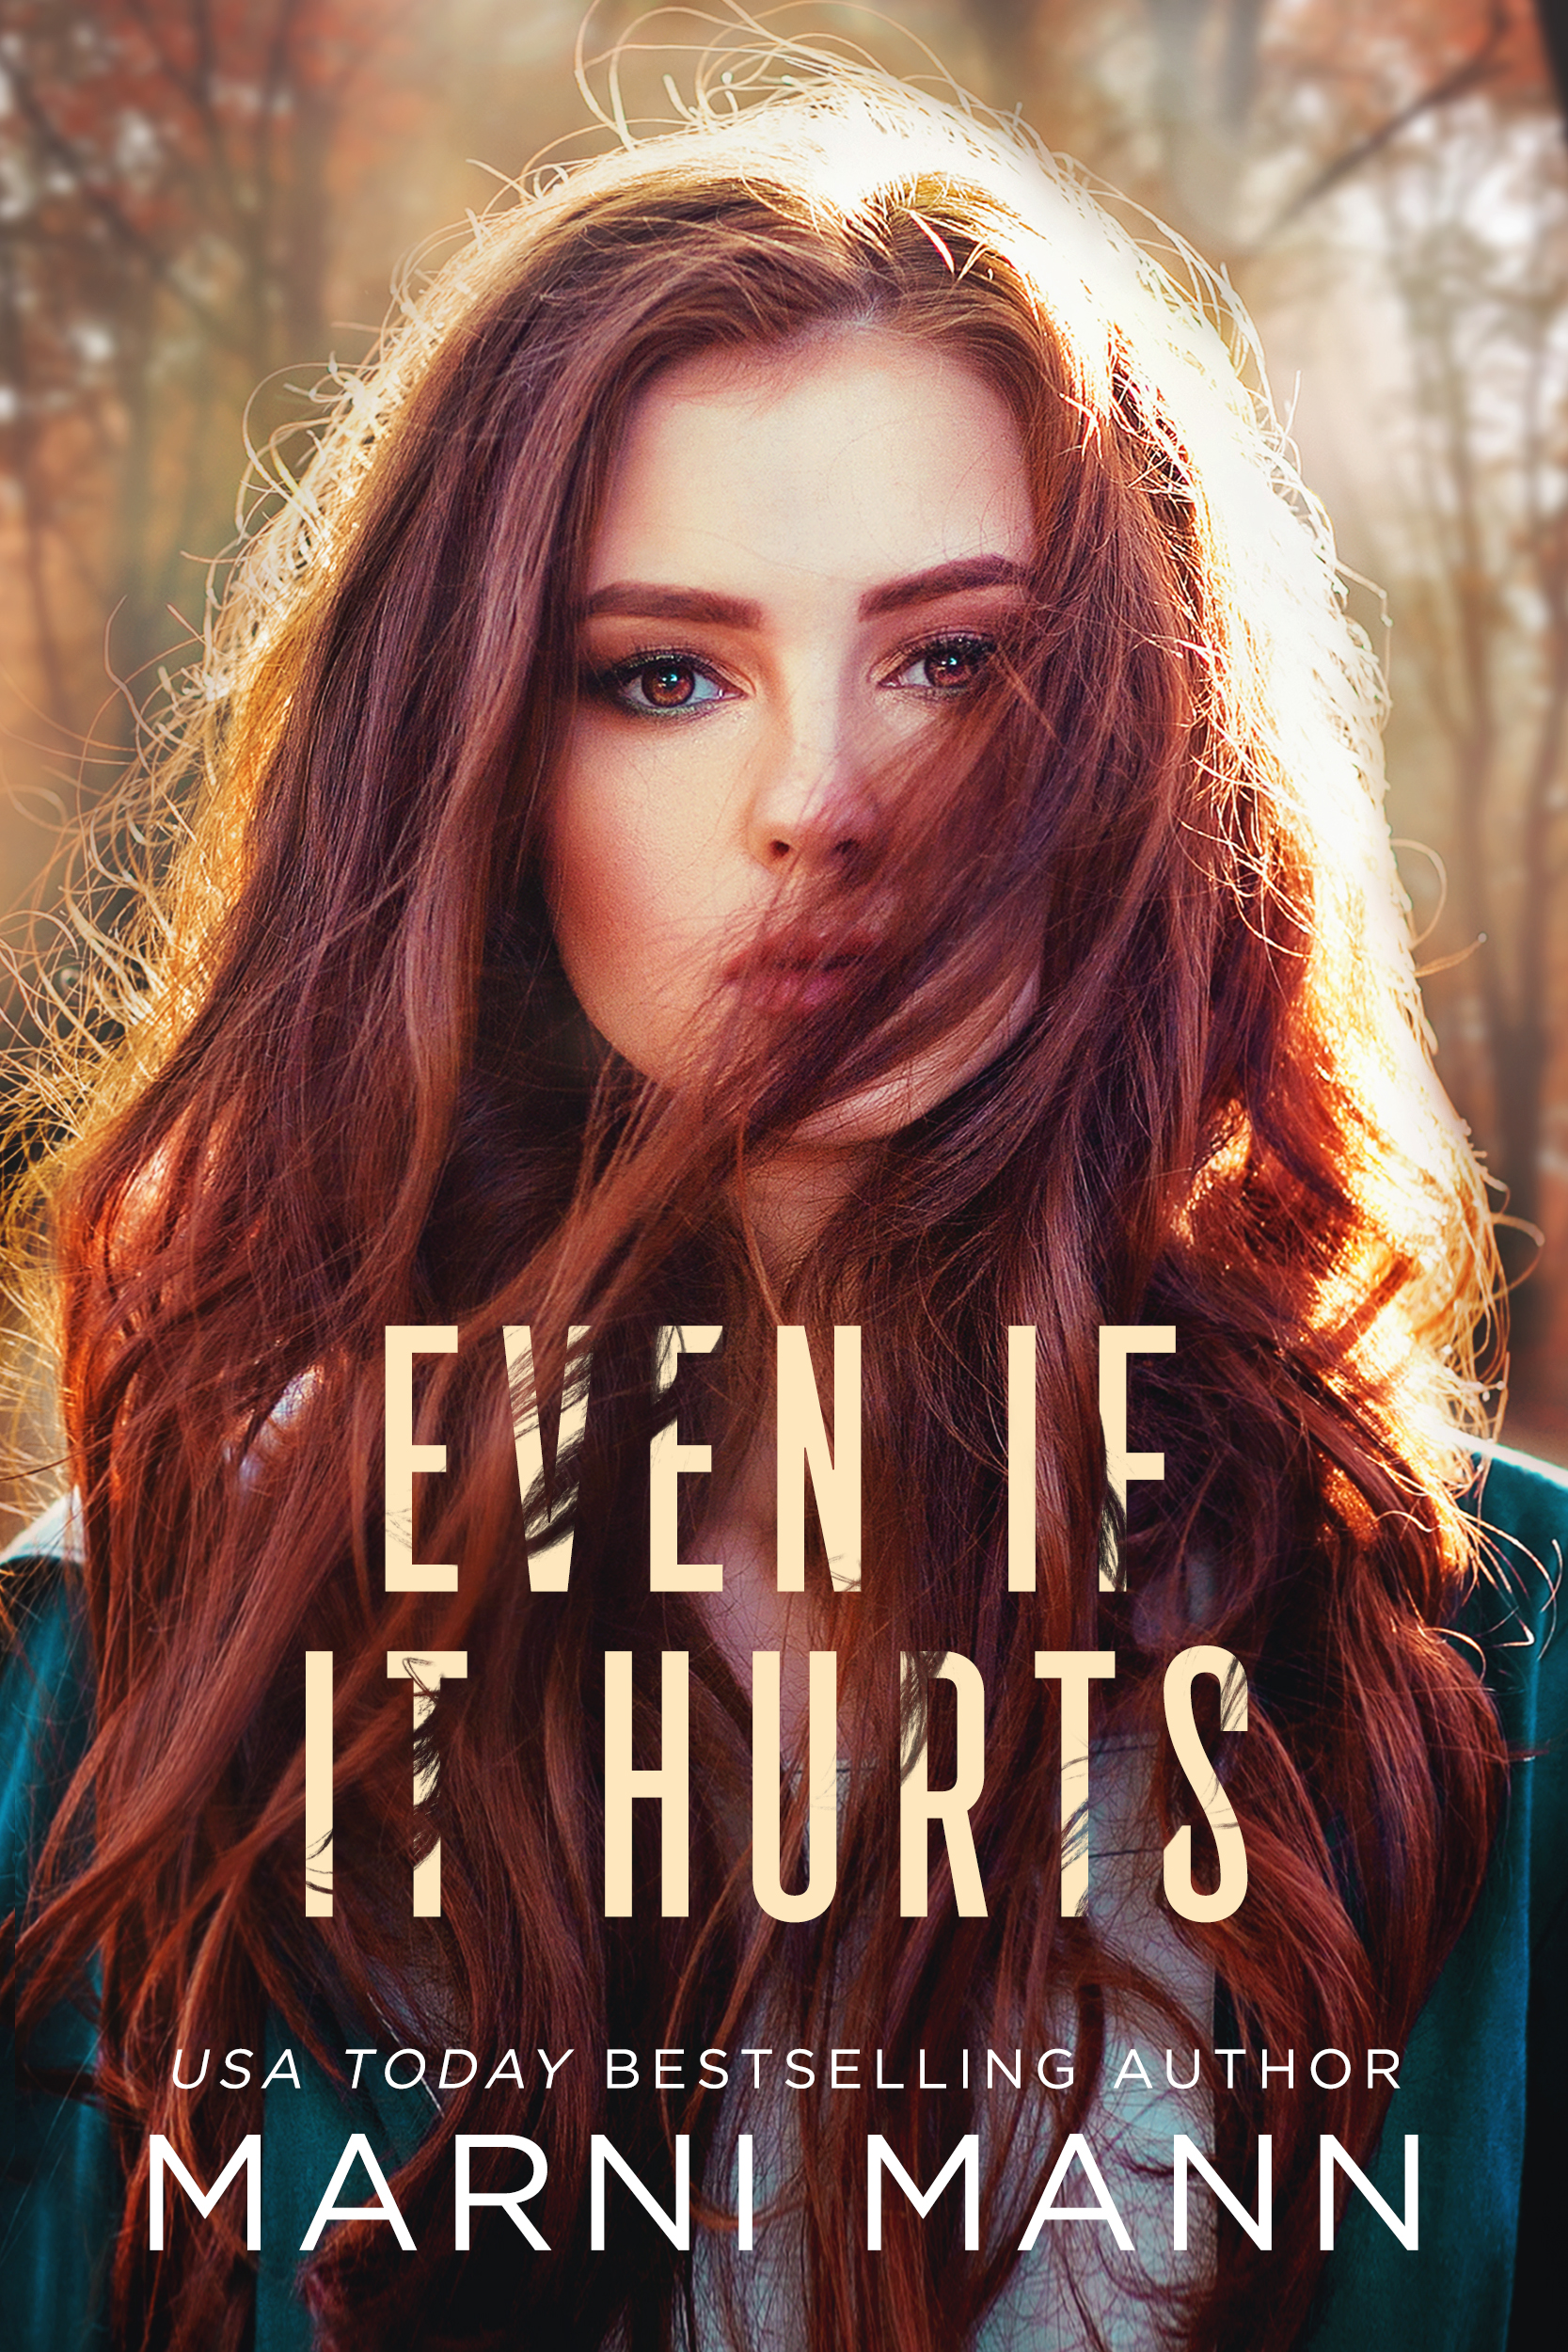 Copy of Even If It Hurts AMAZON.jpg